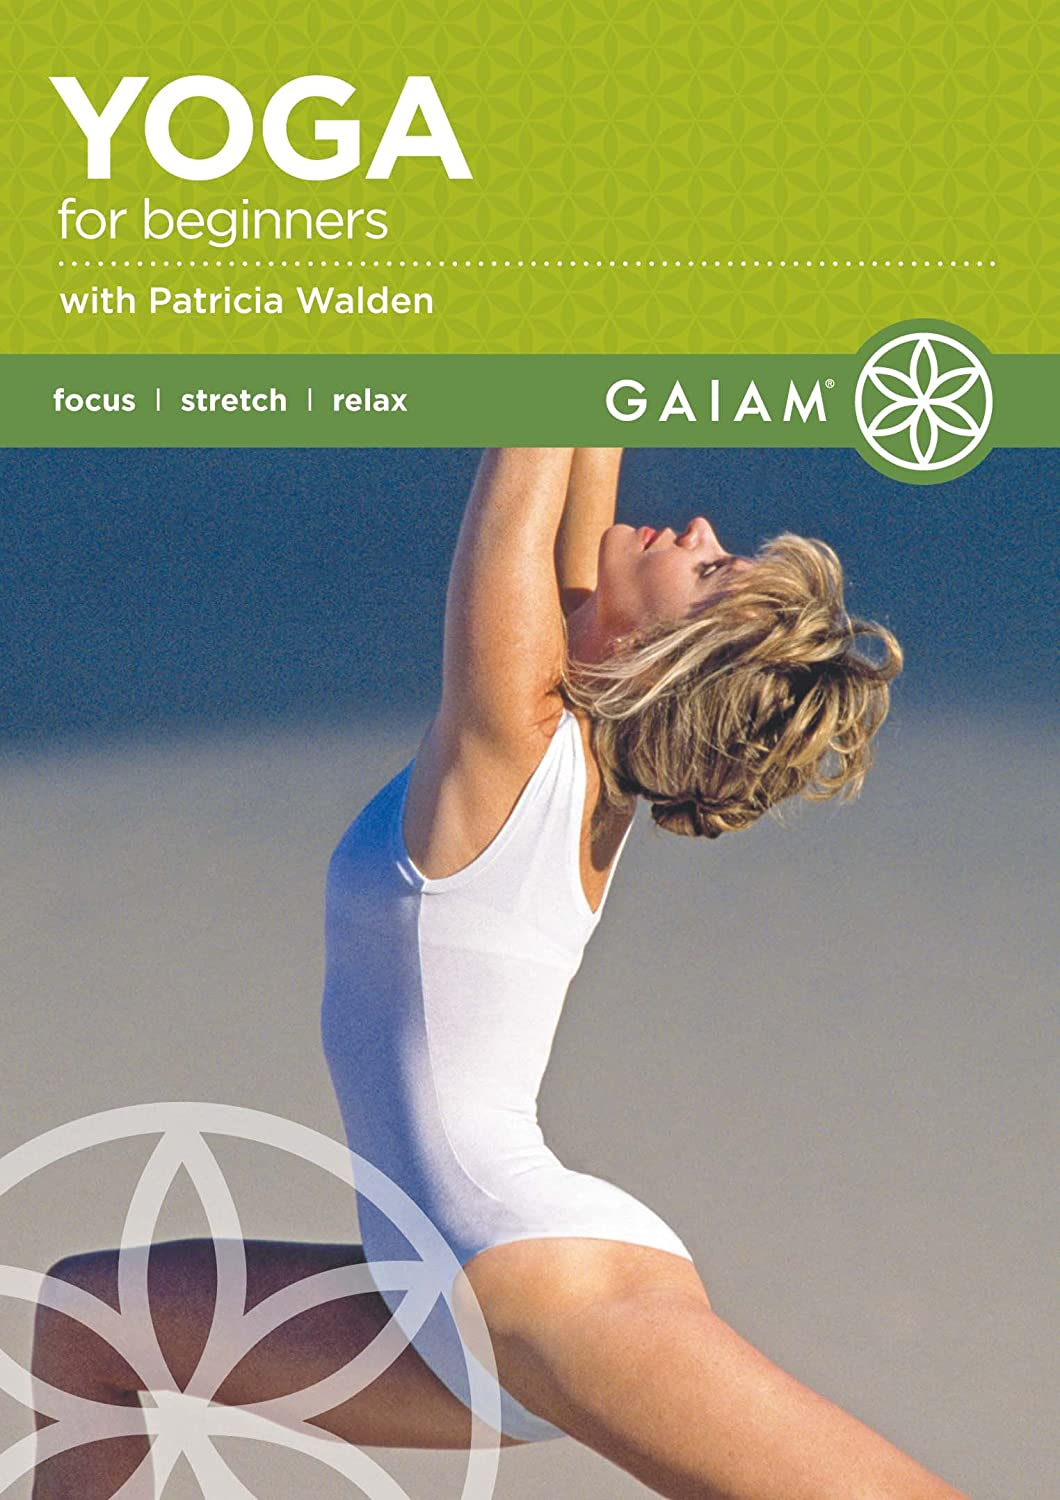 Amazon.com: Yoga for Beginners: Patricia Walden, Steve Adams ...